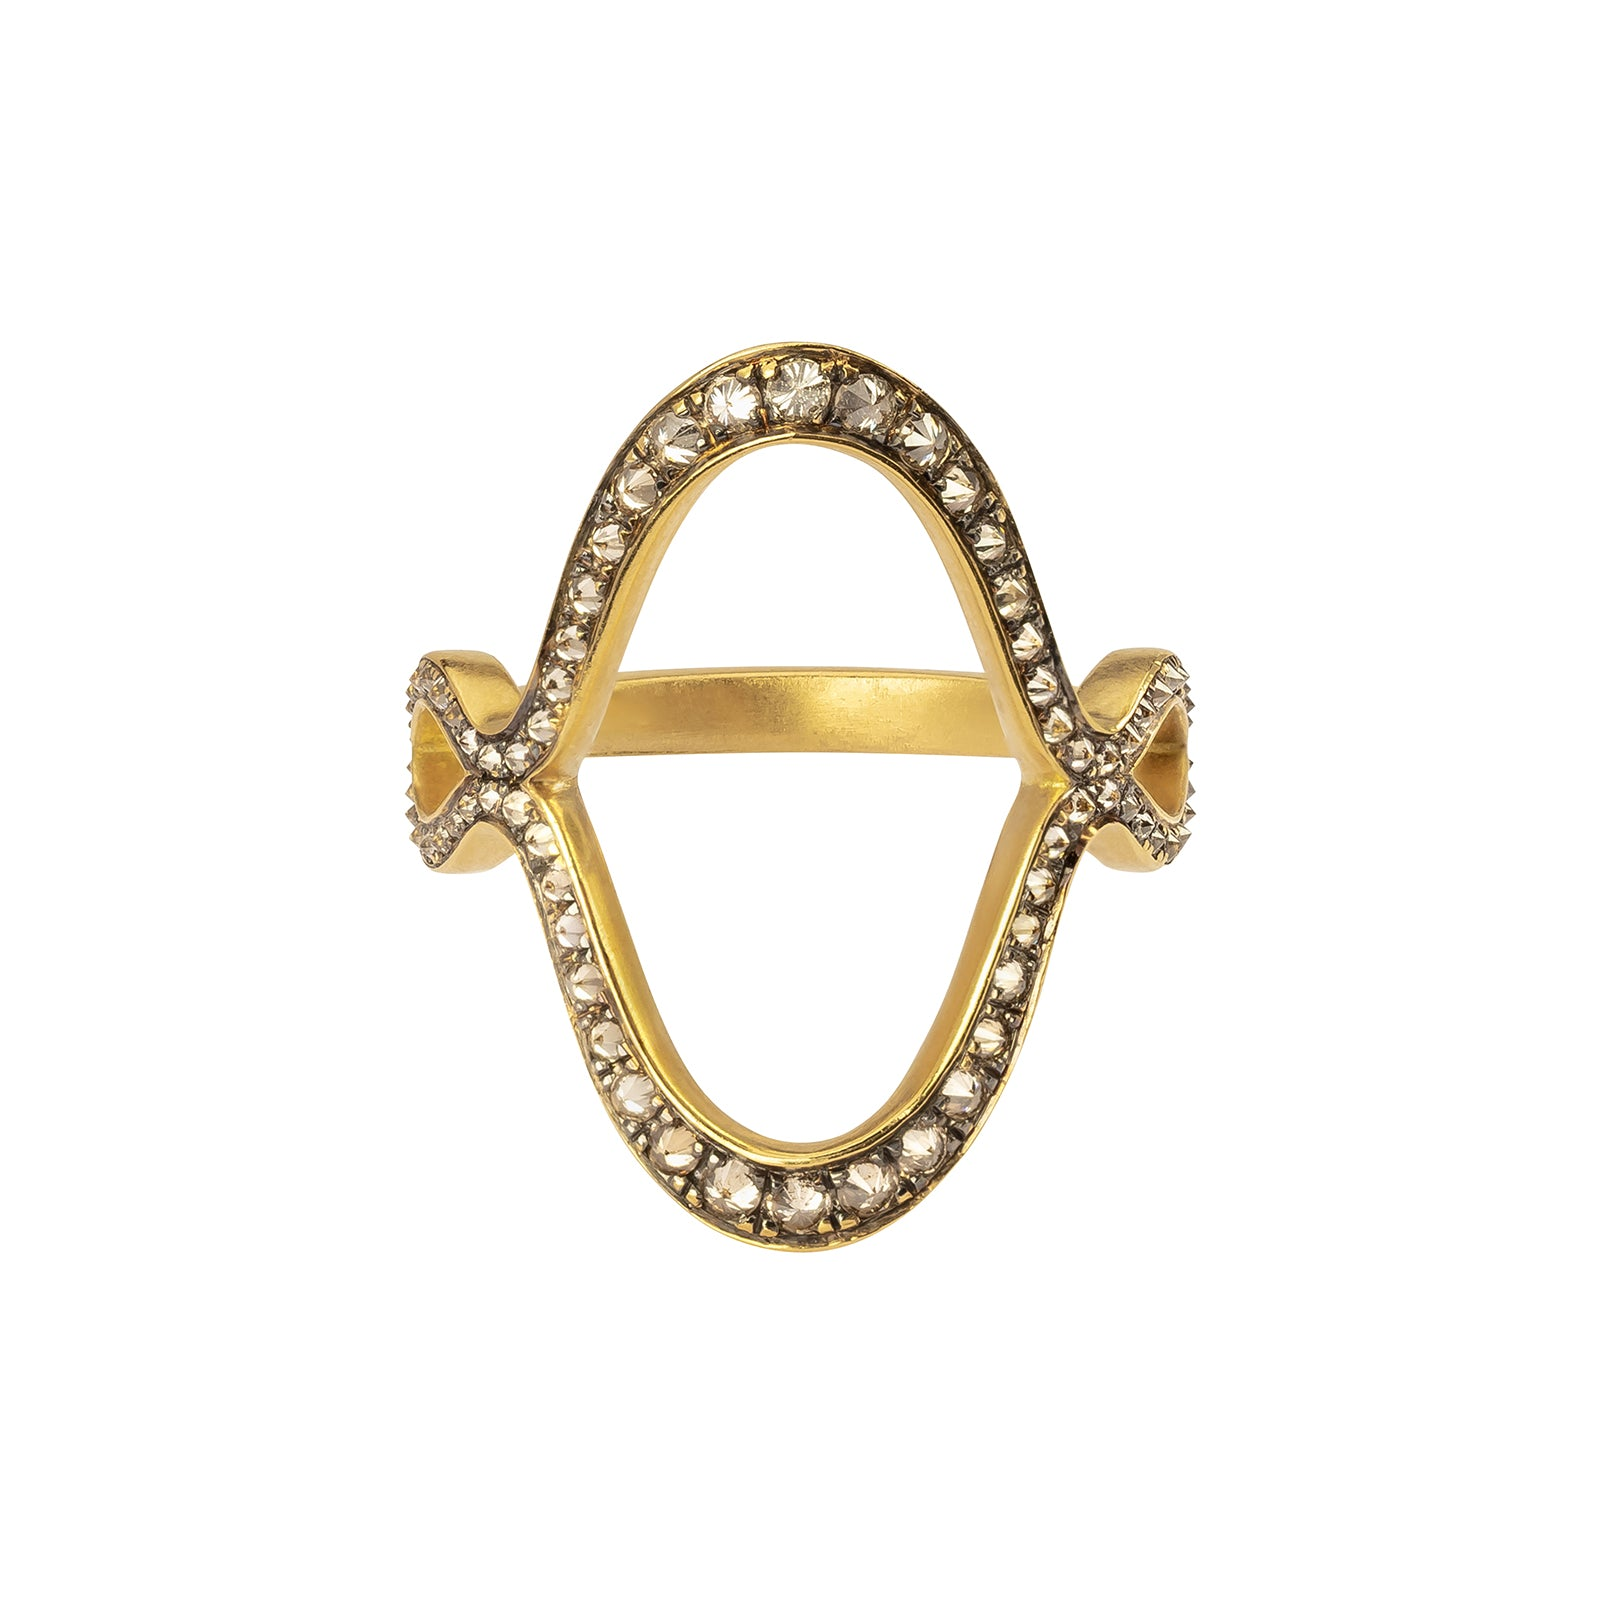 Anahita Jaws Anah Motif Reverse Ring - Rings - Broken English Jewelry